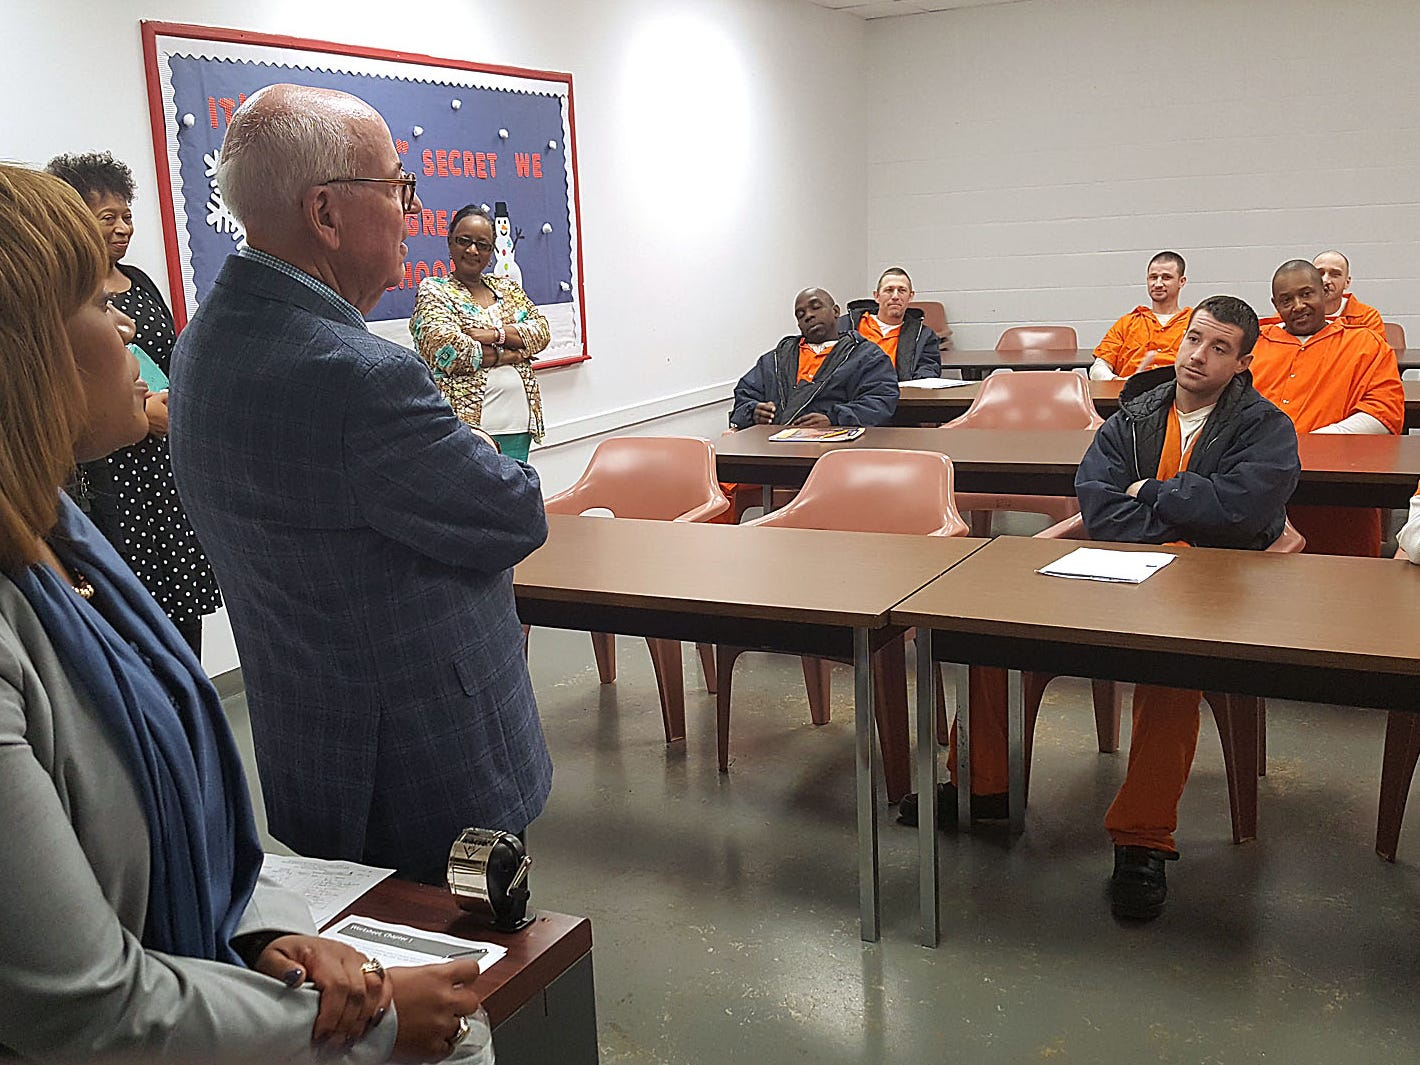 Offenders listen in a class at the Technical Violations Center in Greenwood while Mississippi Corrections Commissioner Pelicia Hall observes. The center, housed in the old Delta Correctional Facility, is designed to keep offenders from returning to prison if they're only guilty of a few technical violations.